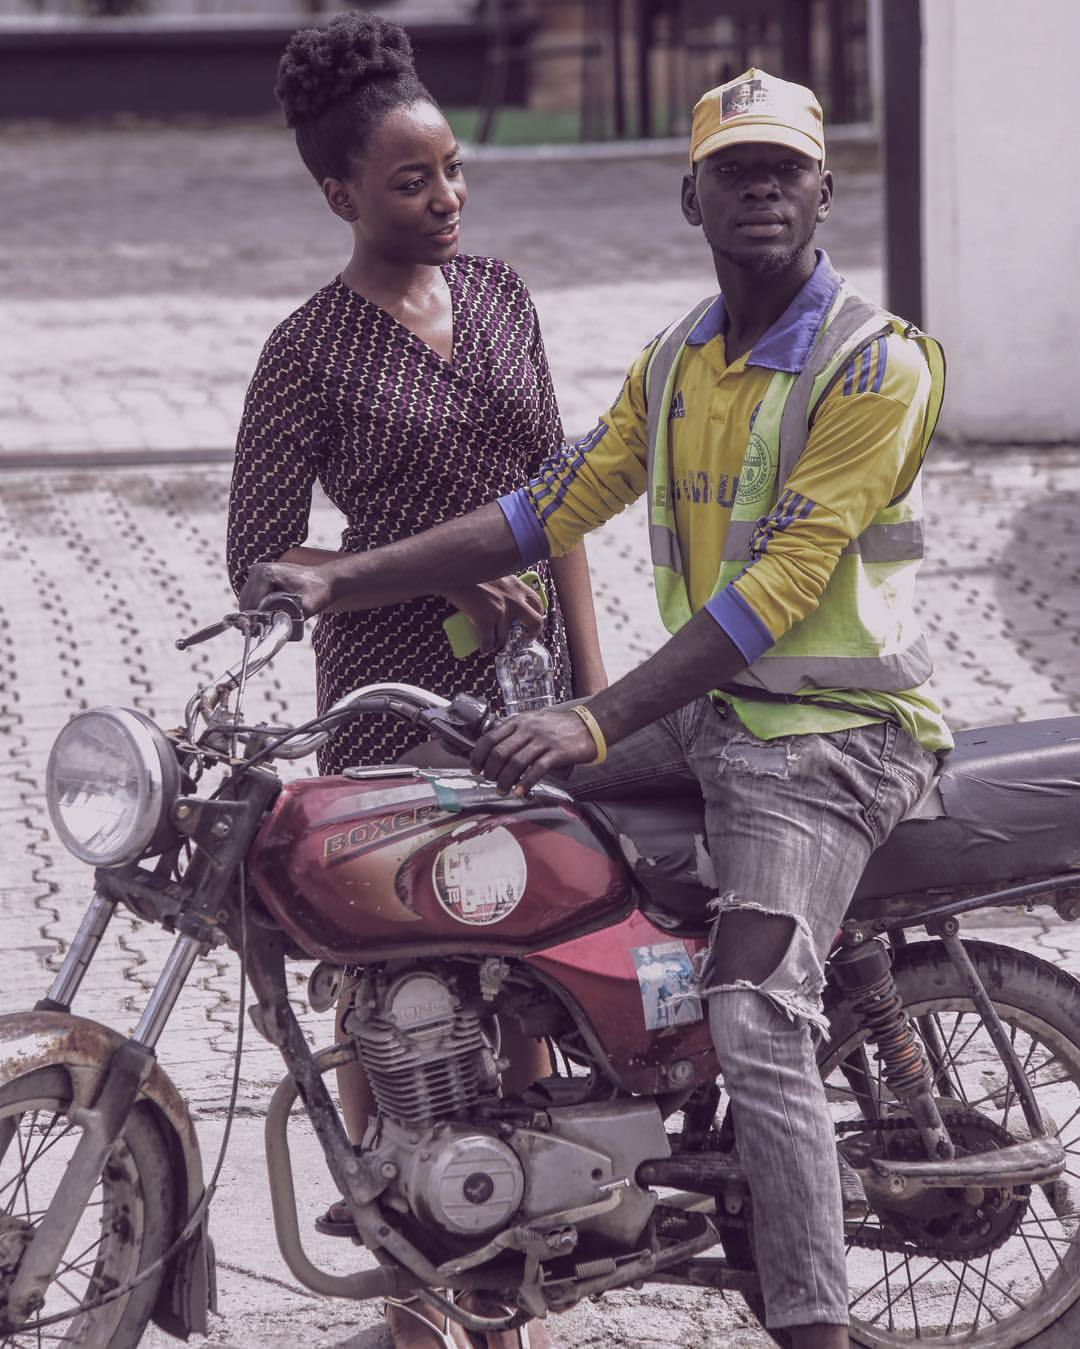 I was gunning for a ride, Tuface's brother (as he calls himself) spots @may16thphotography across the street, stops to have his picture taken and then asks for payment - because celebrities don't take pictures for free ☺️   Great guy.   #throwback